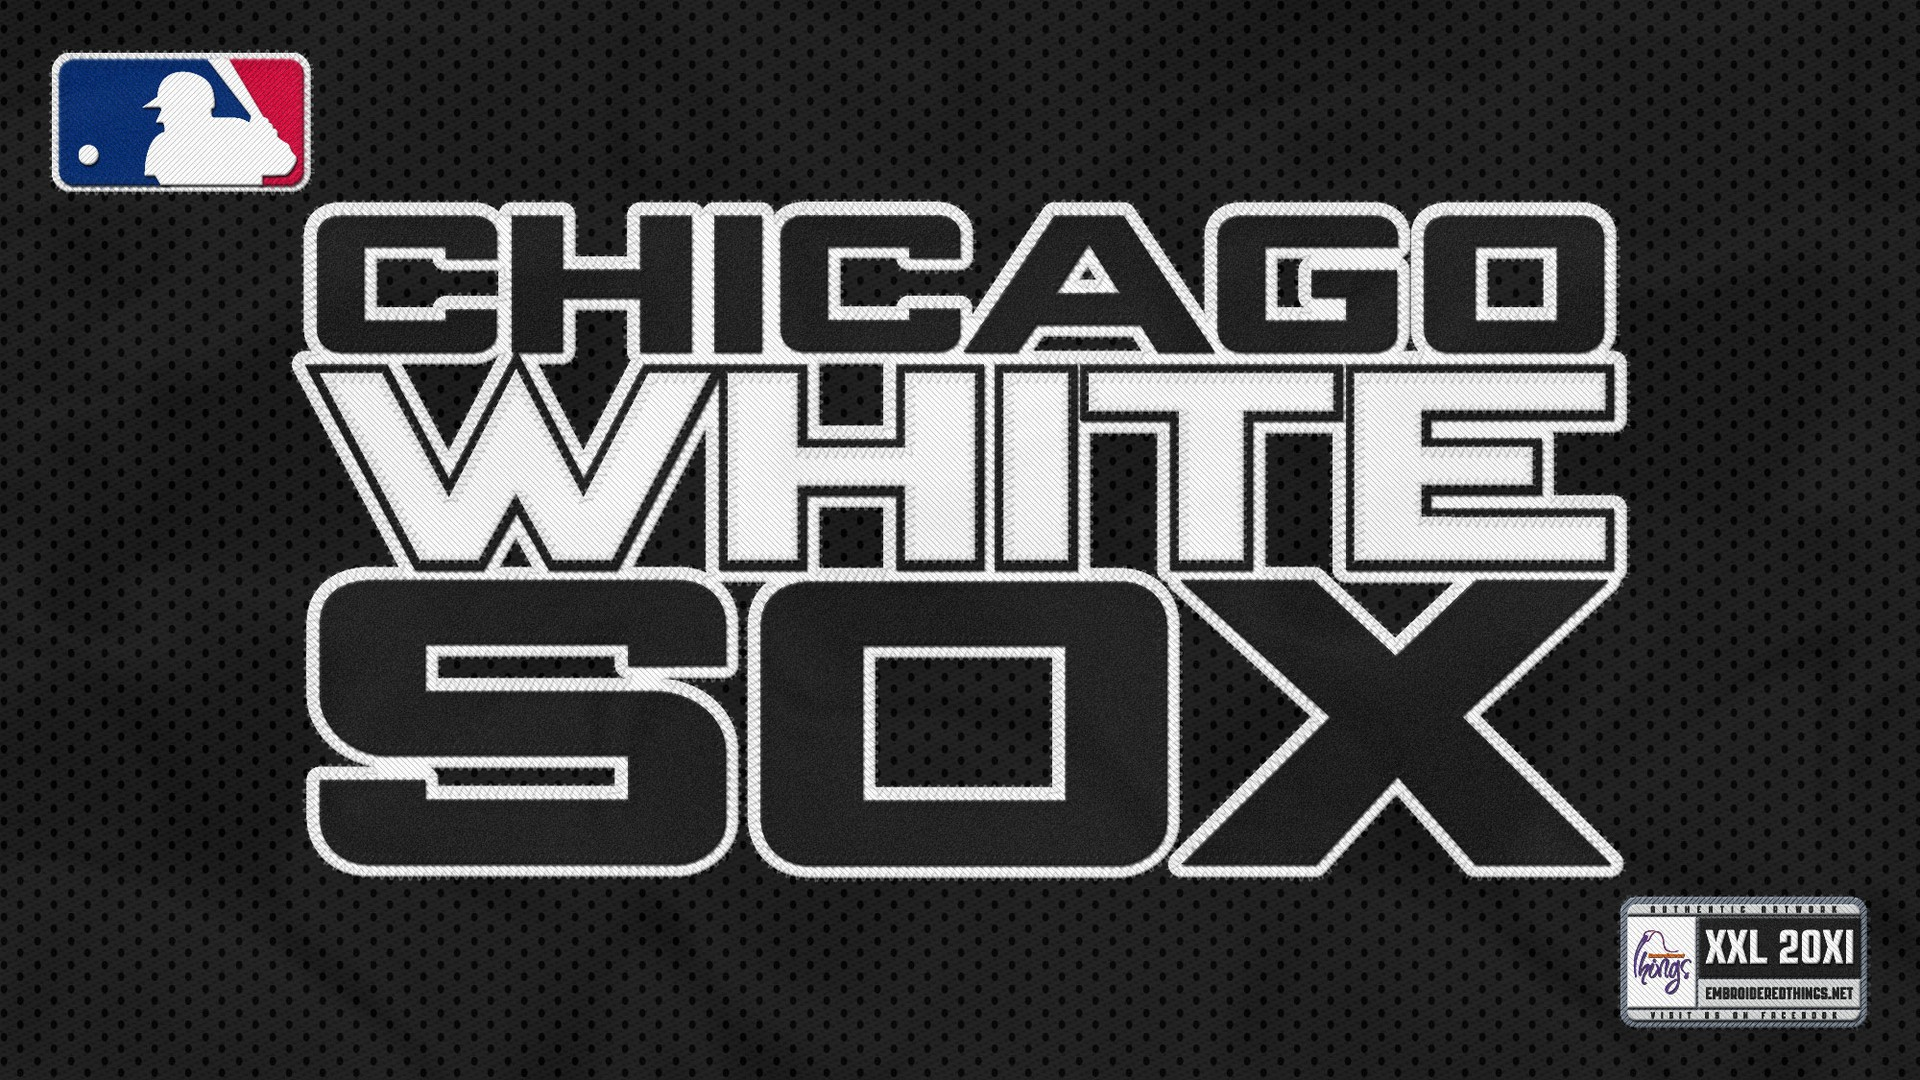 Chicago White Sox HD Wallpaper Background Image 1920x1080 ID 1920x1080